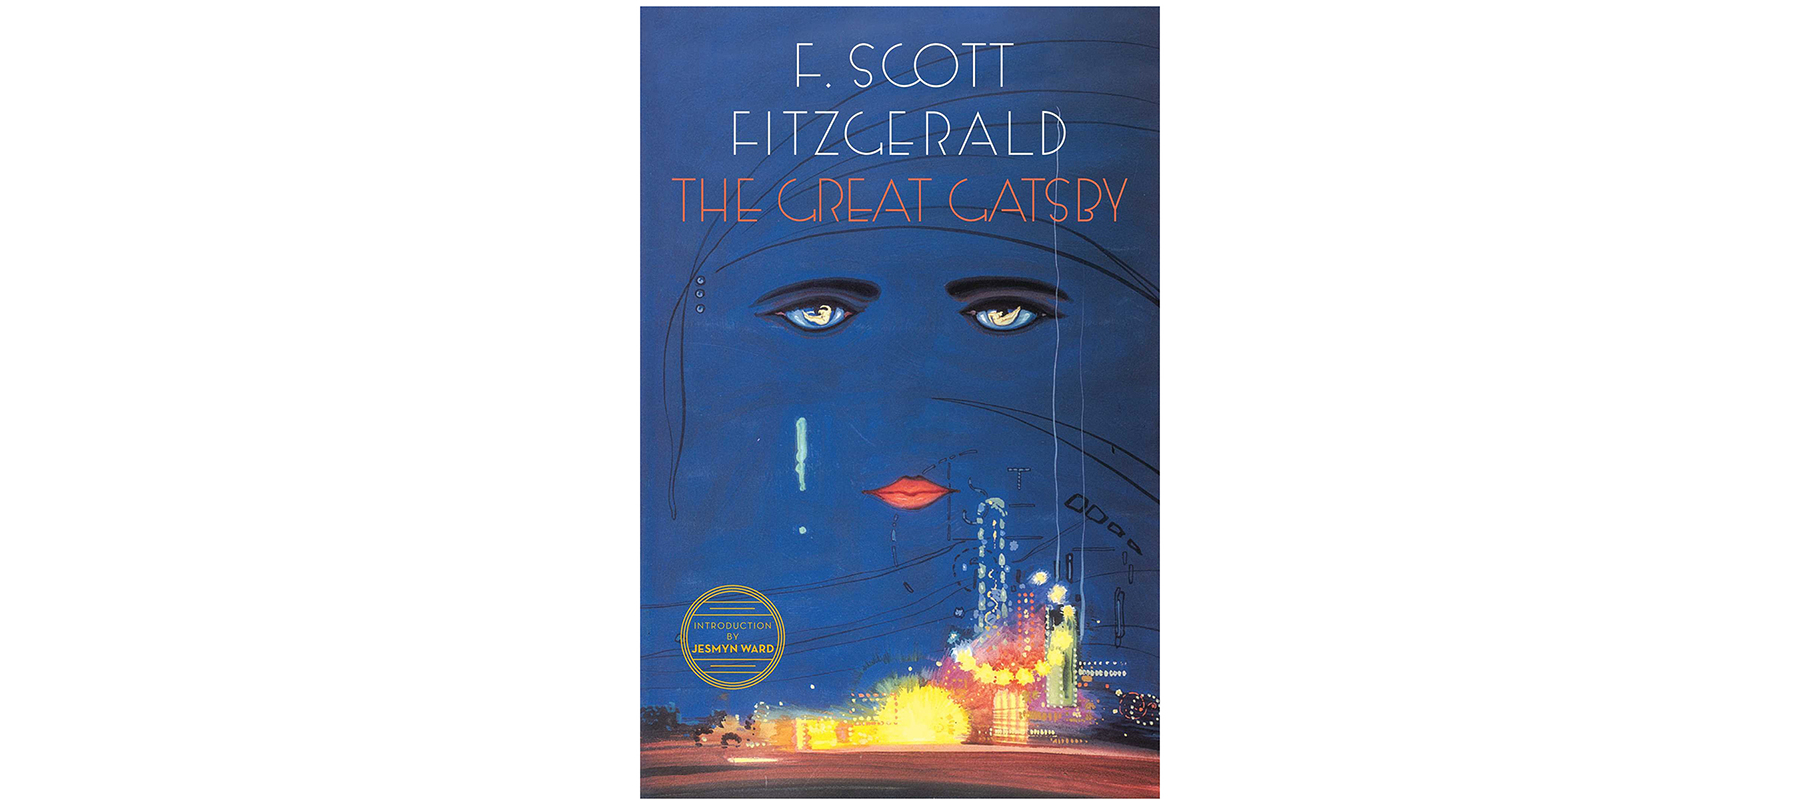 Cover of The Great Gastby, by F. Scott Fitzgerald